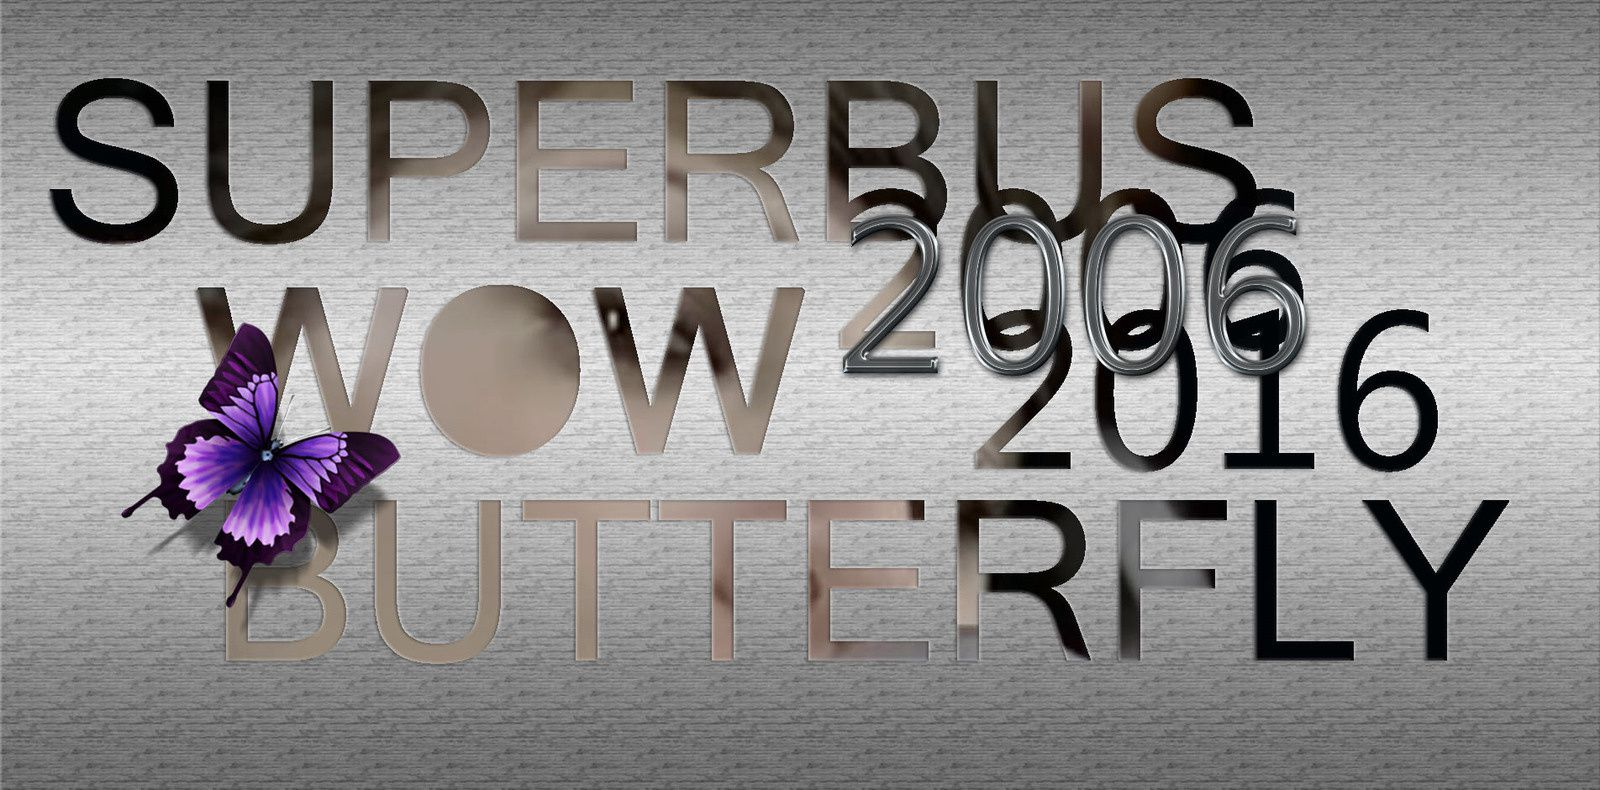 Superbus - Butterfly